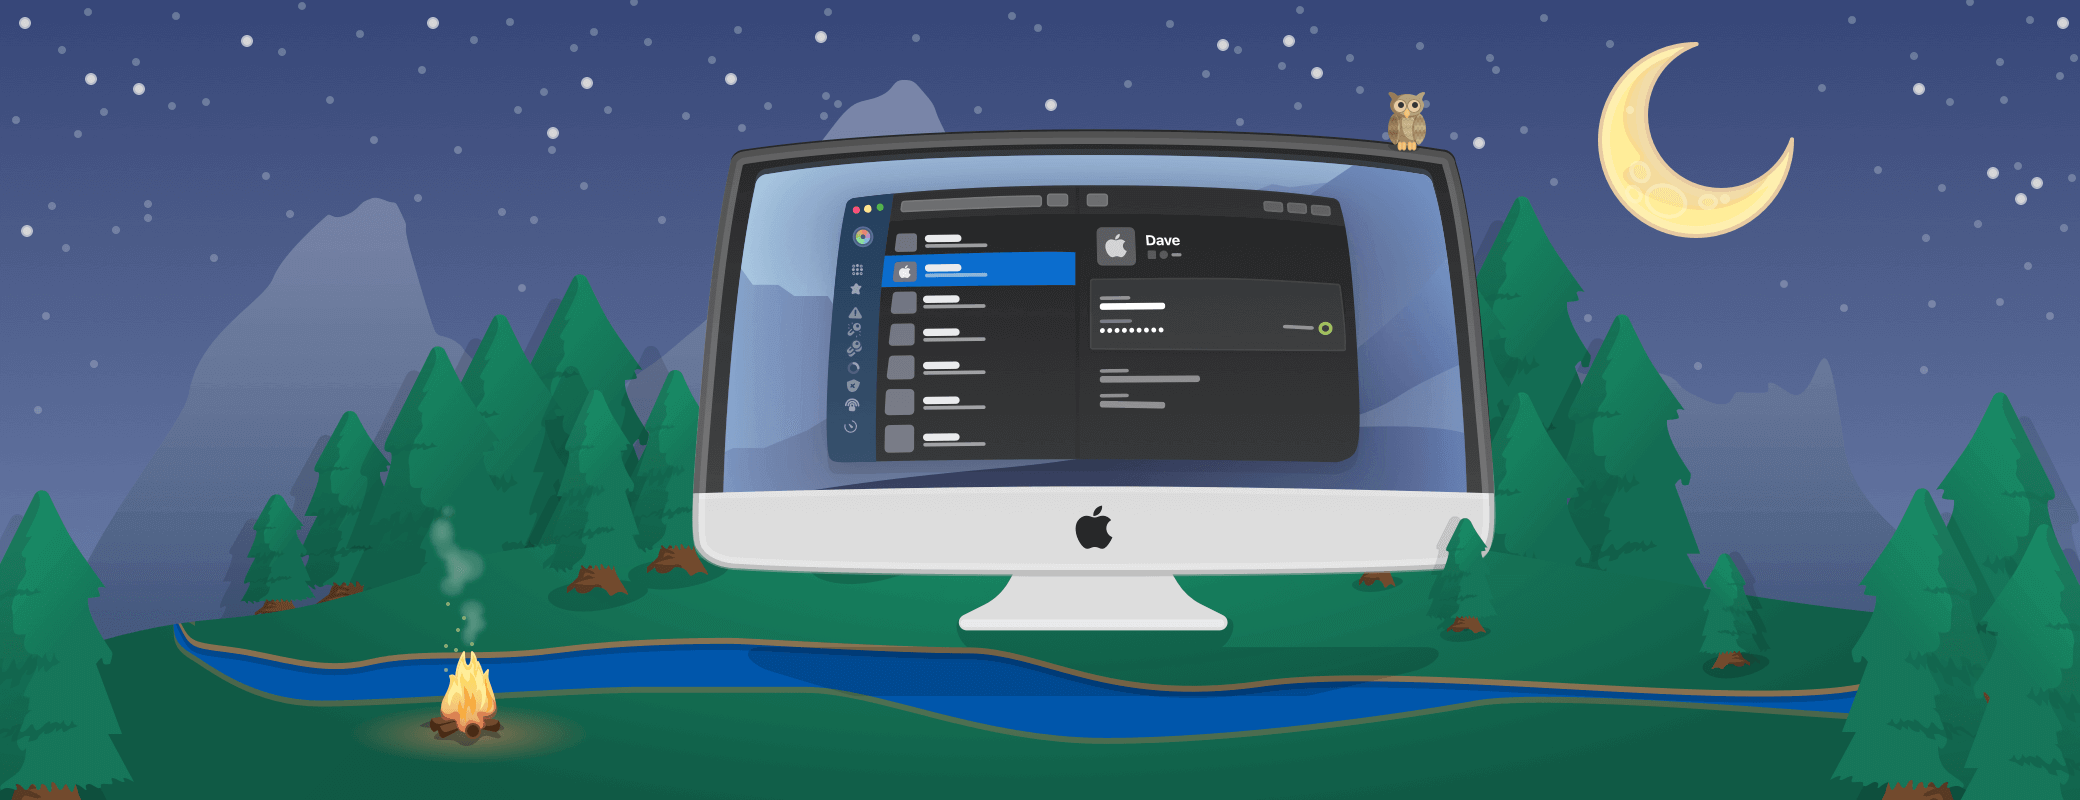 1Password 7.2 for Mac: Welcome to the dark side